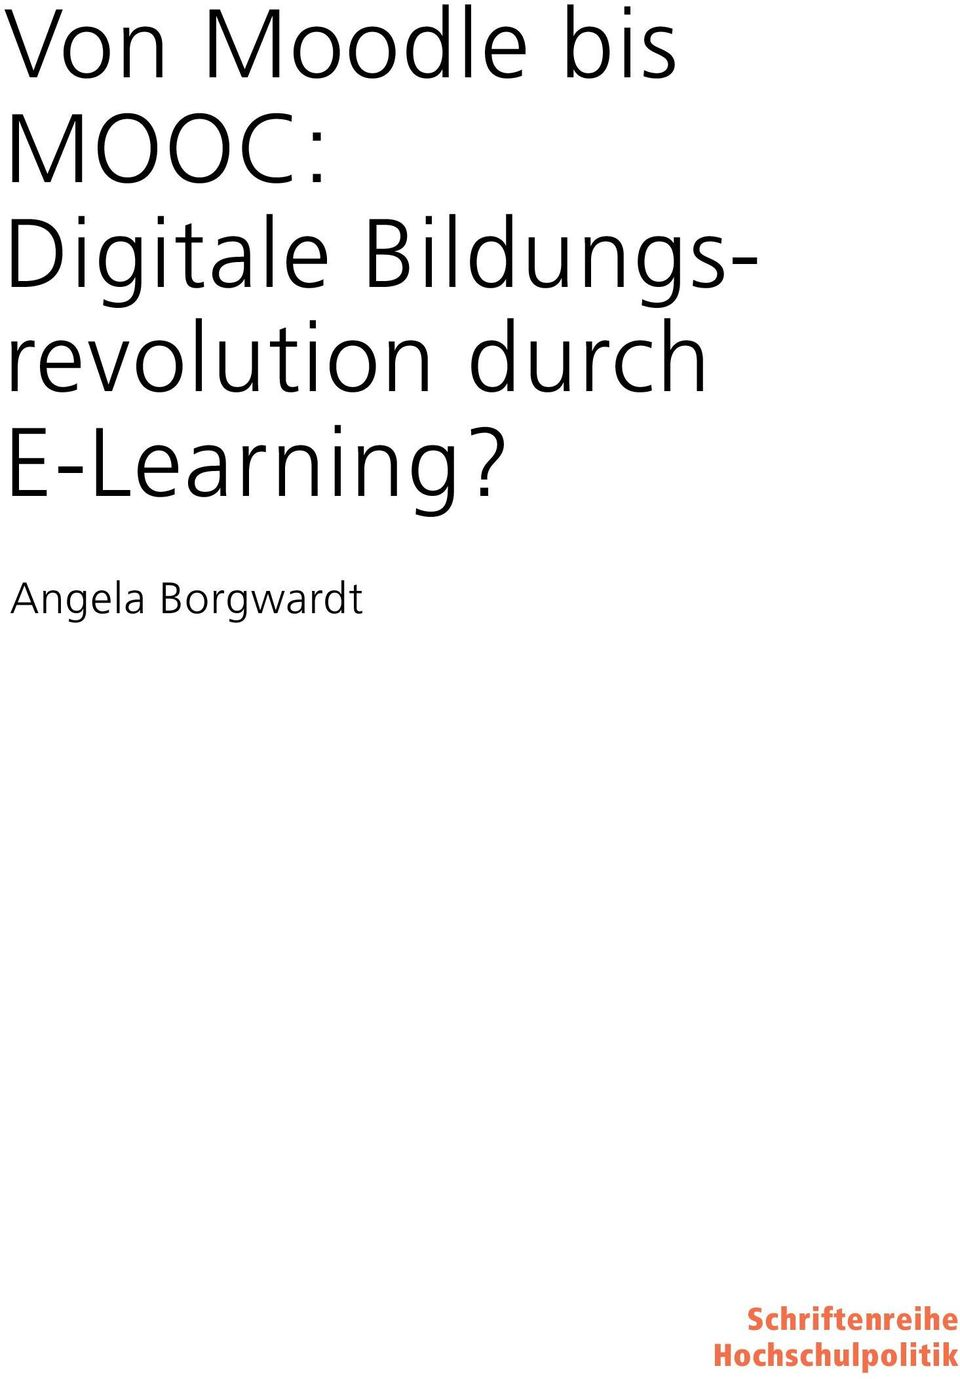 durch E-Learning?